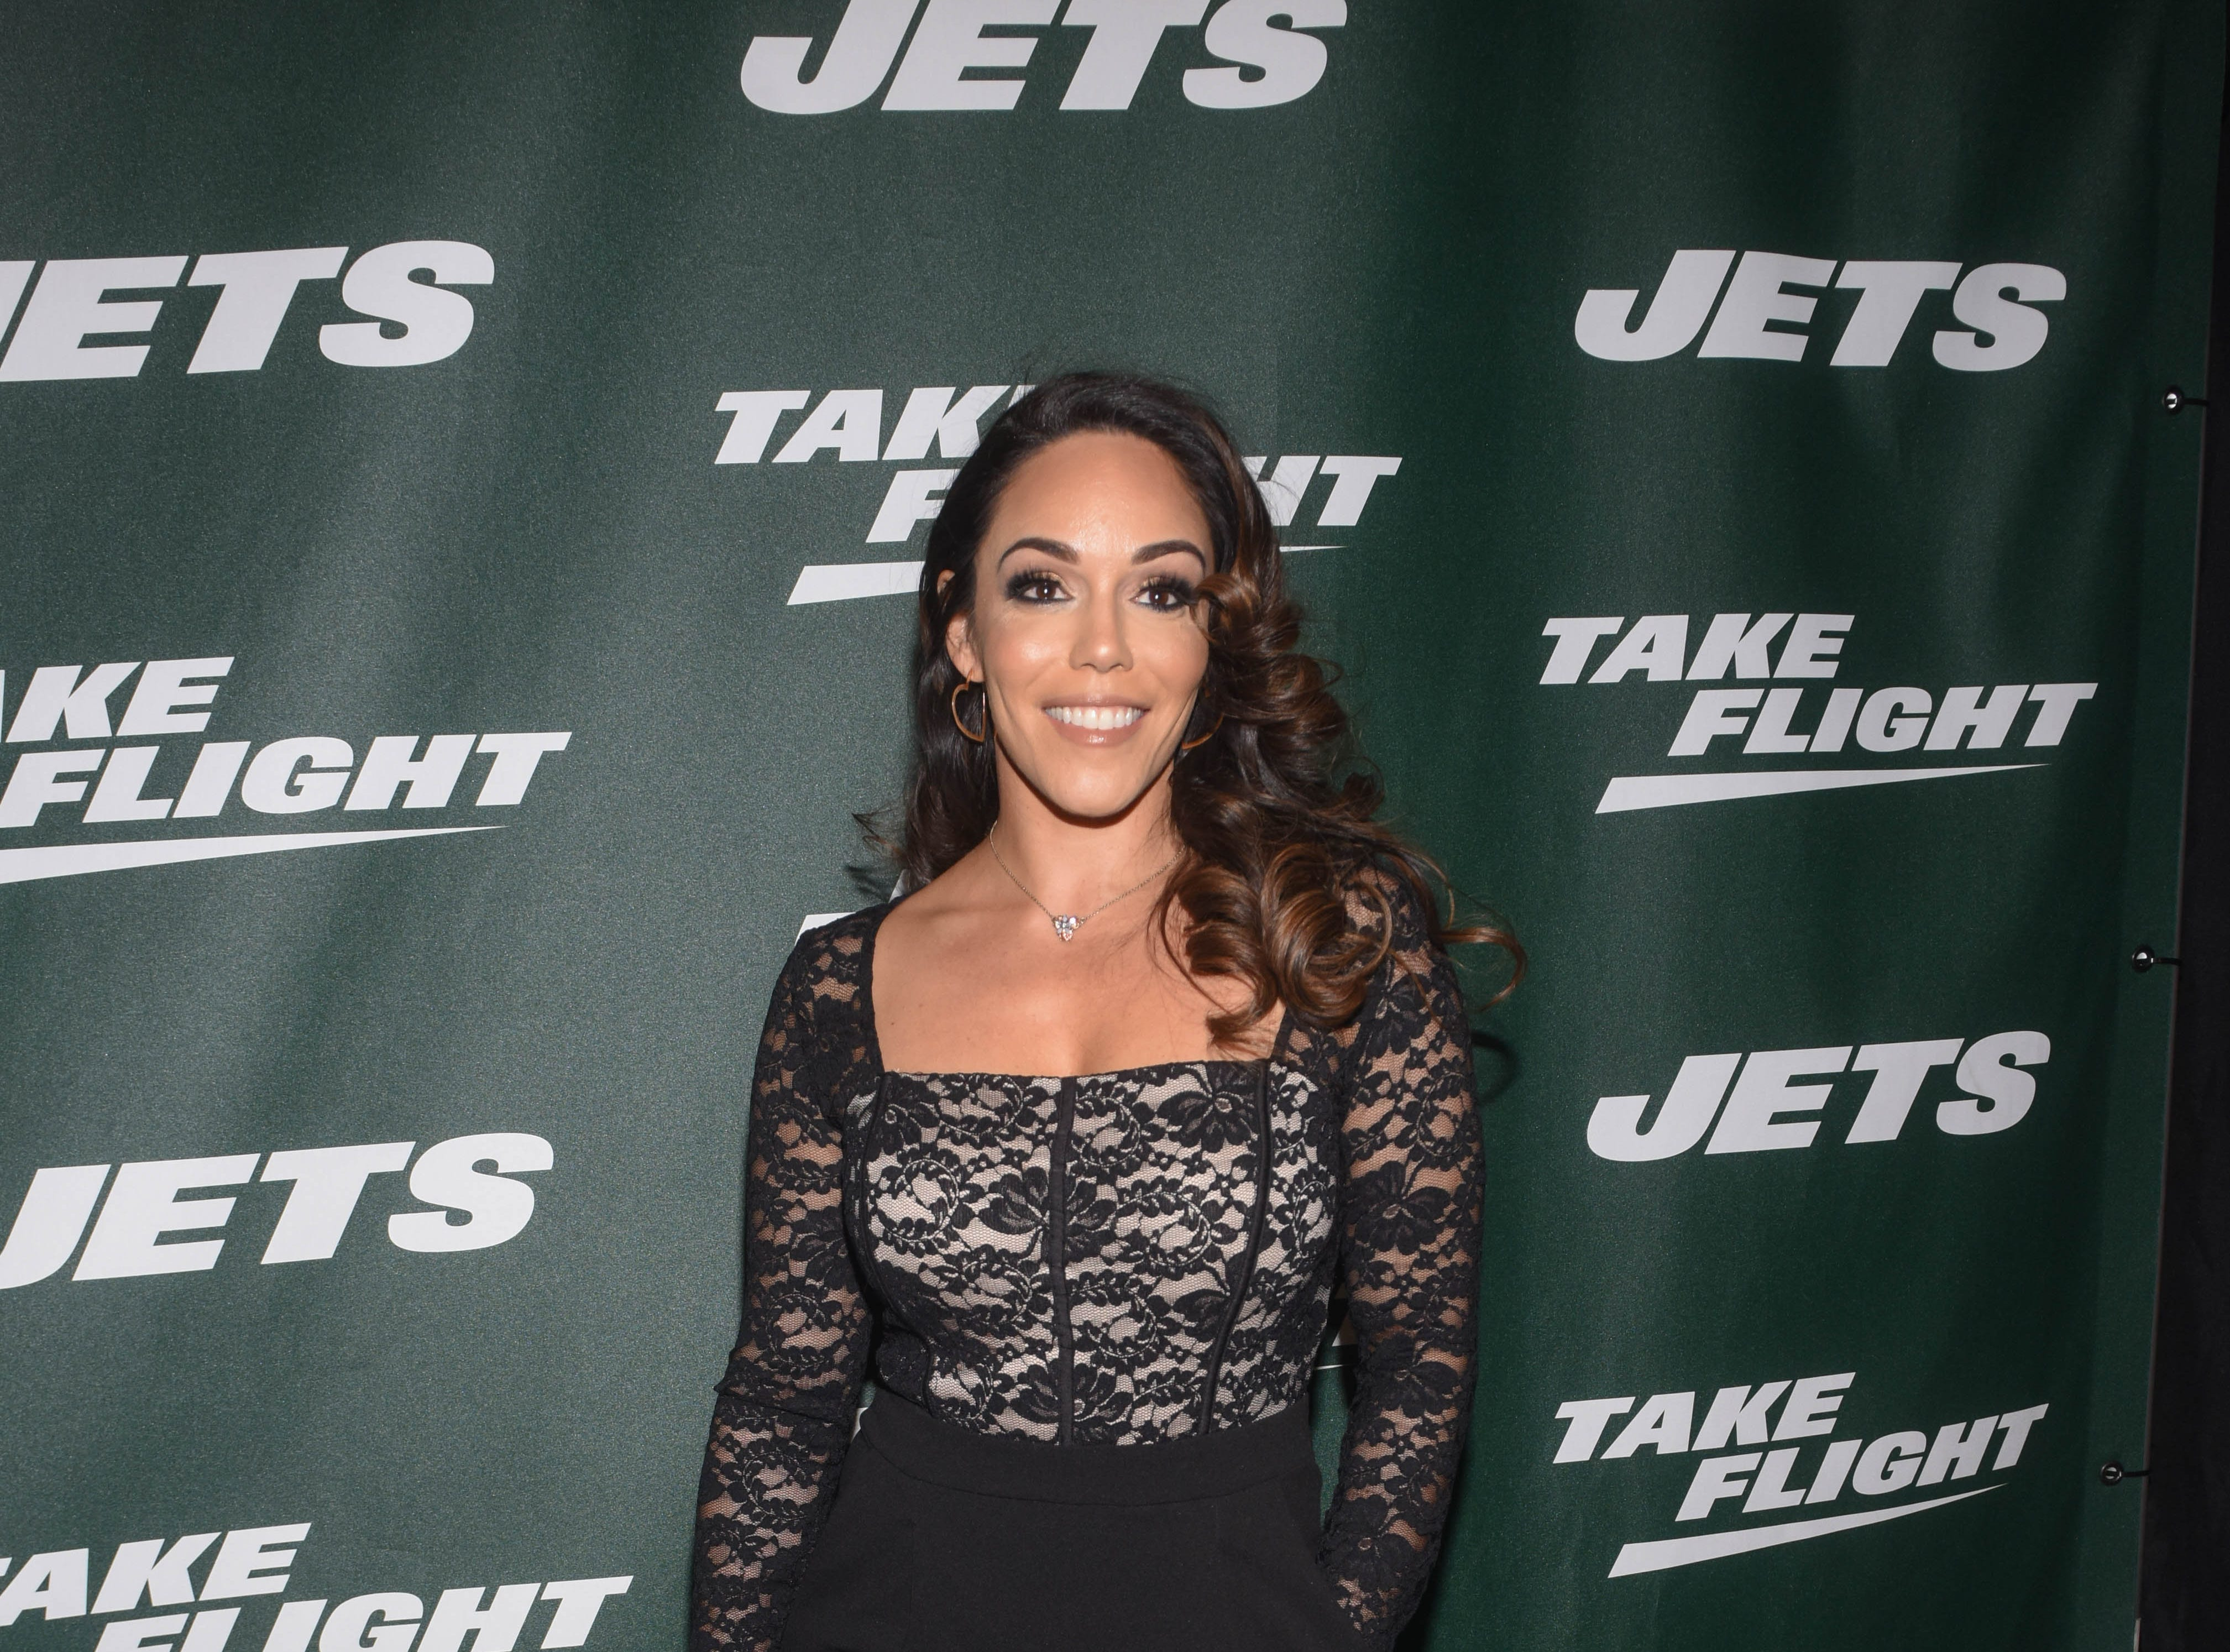 Phoenix Carnevale (MMA ambassador). The NY Jets unveiled their new football uniforms with an event hosted by JB Smoove at Gotham Hall in New York. 04/05/2019